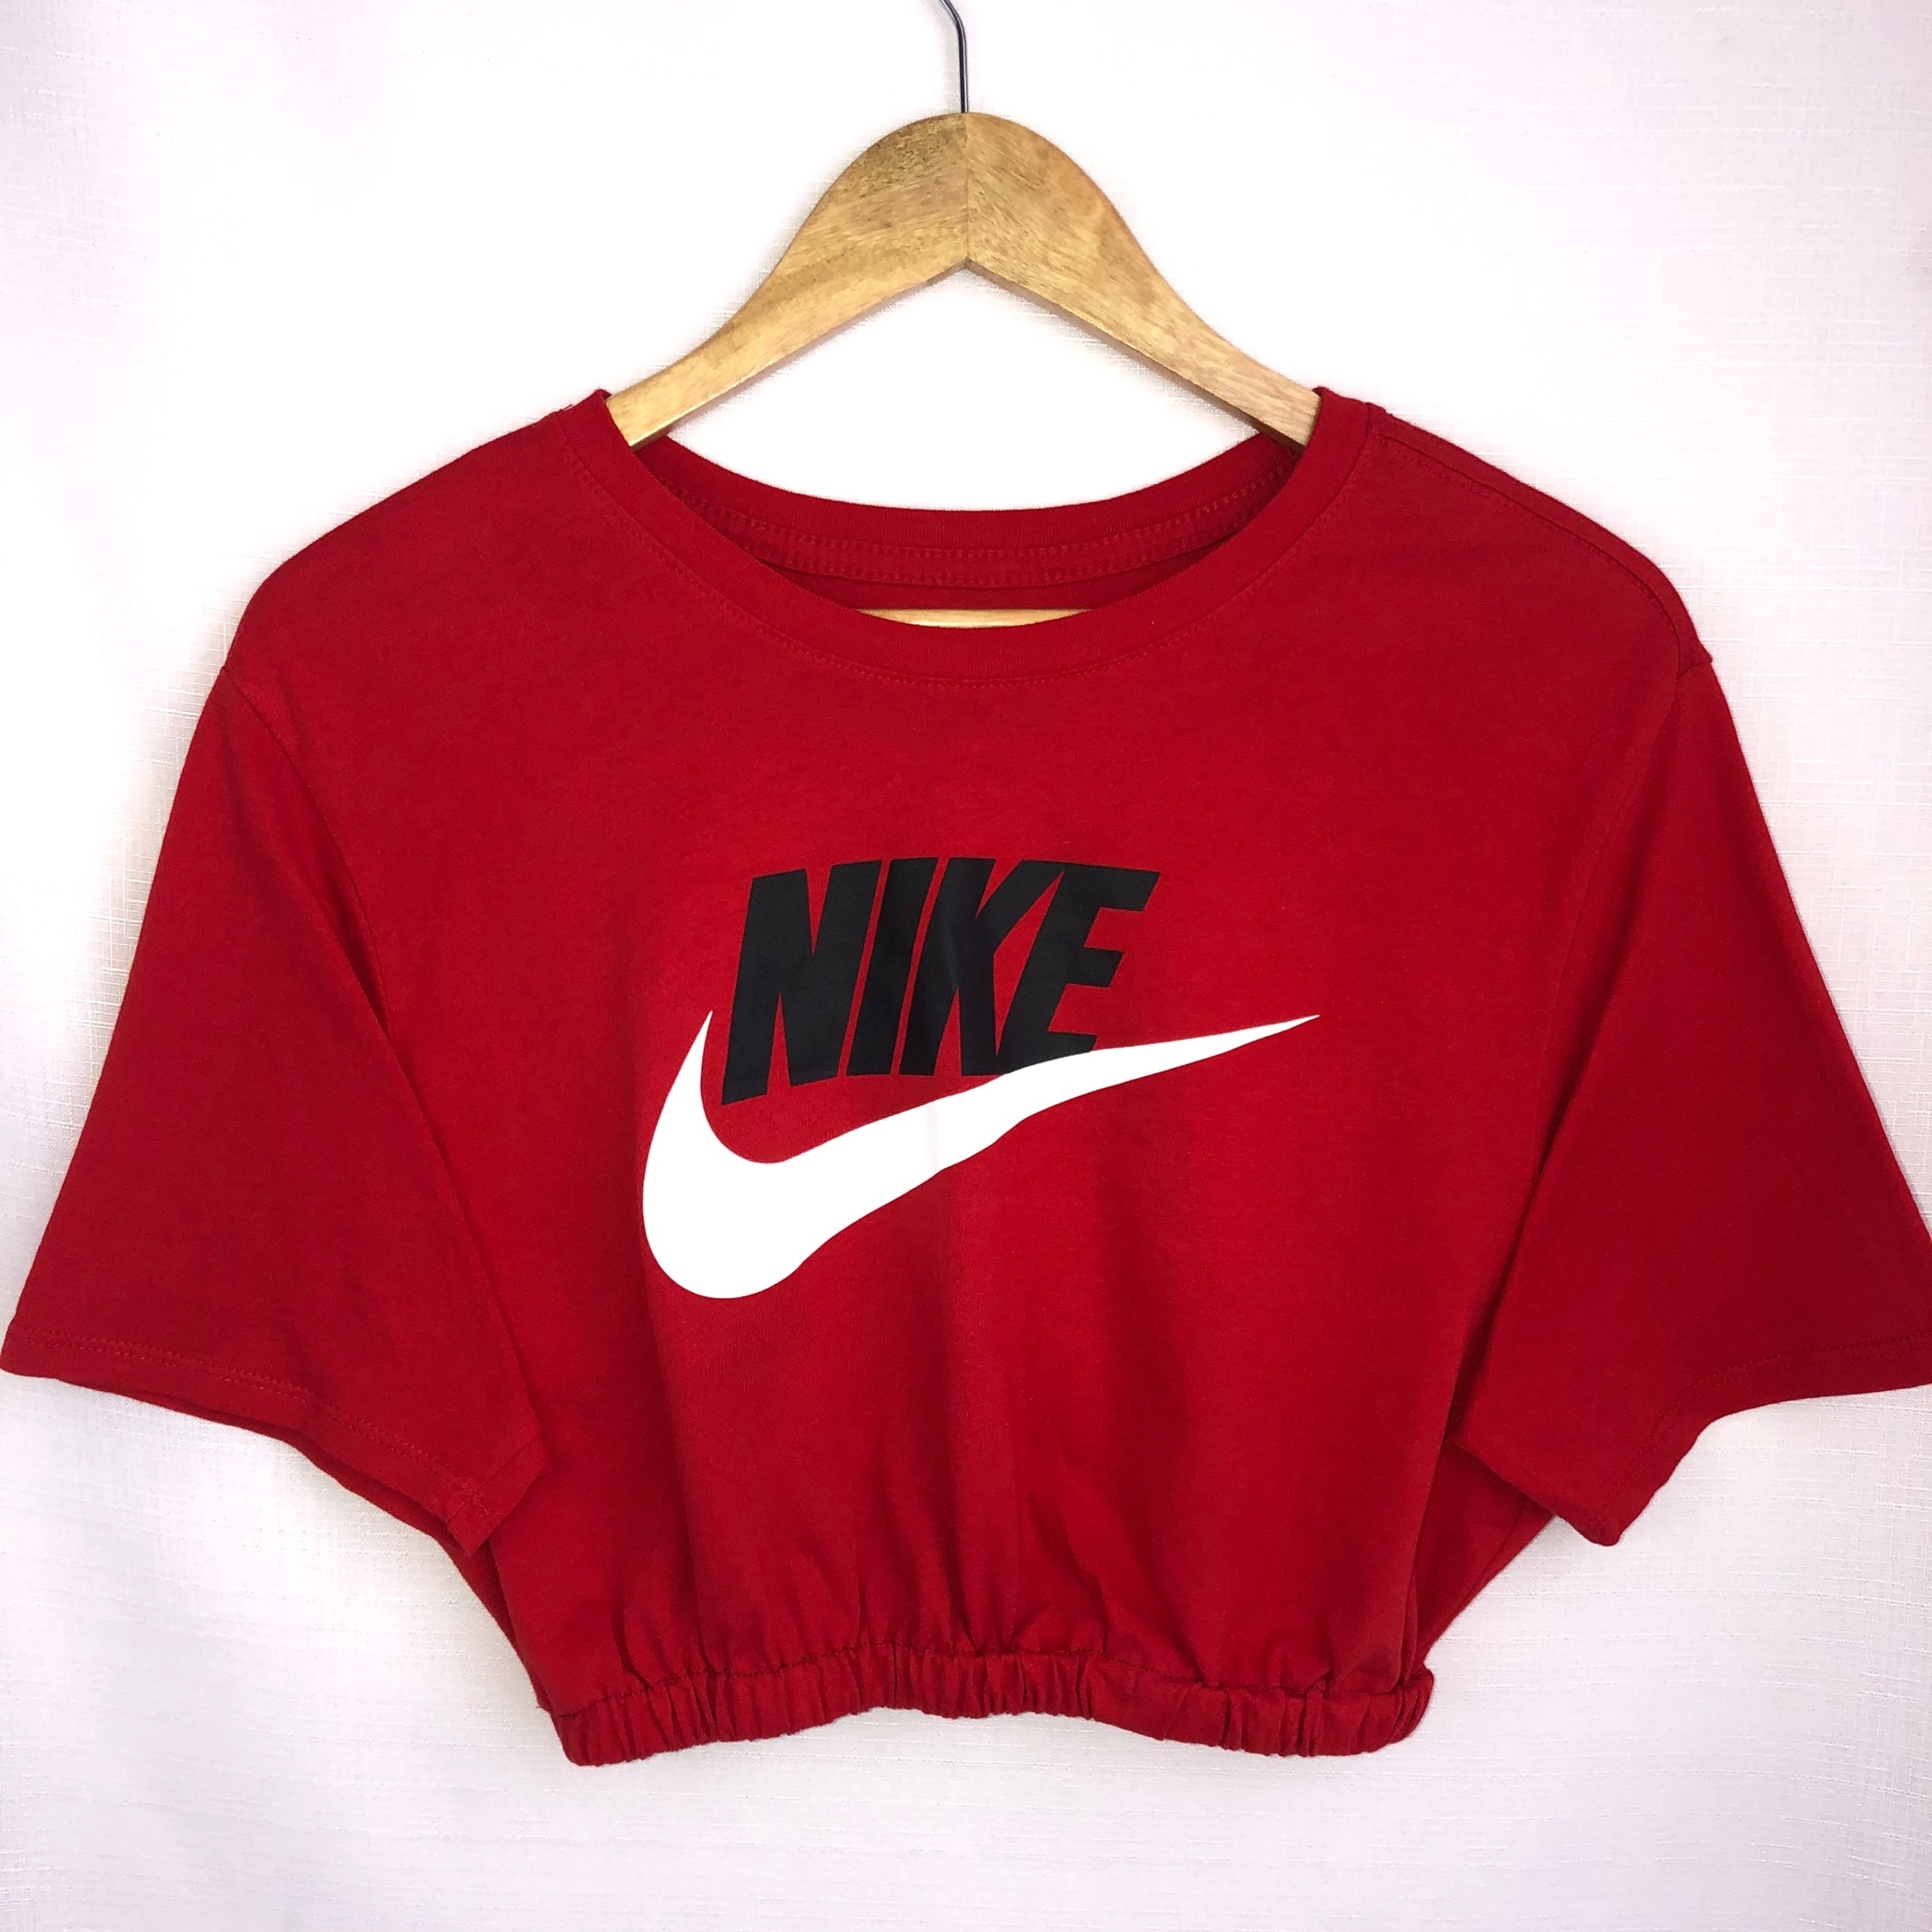 red nike top